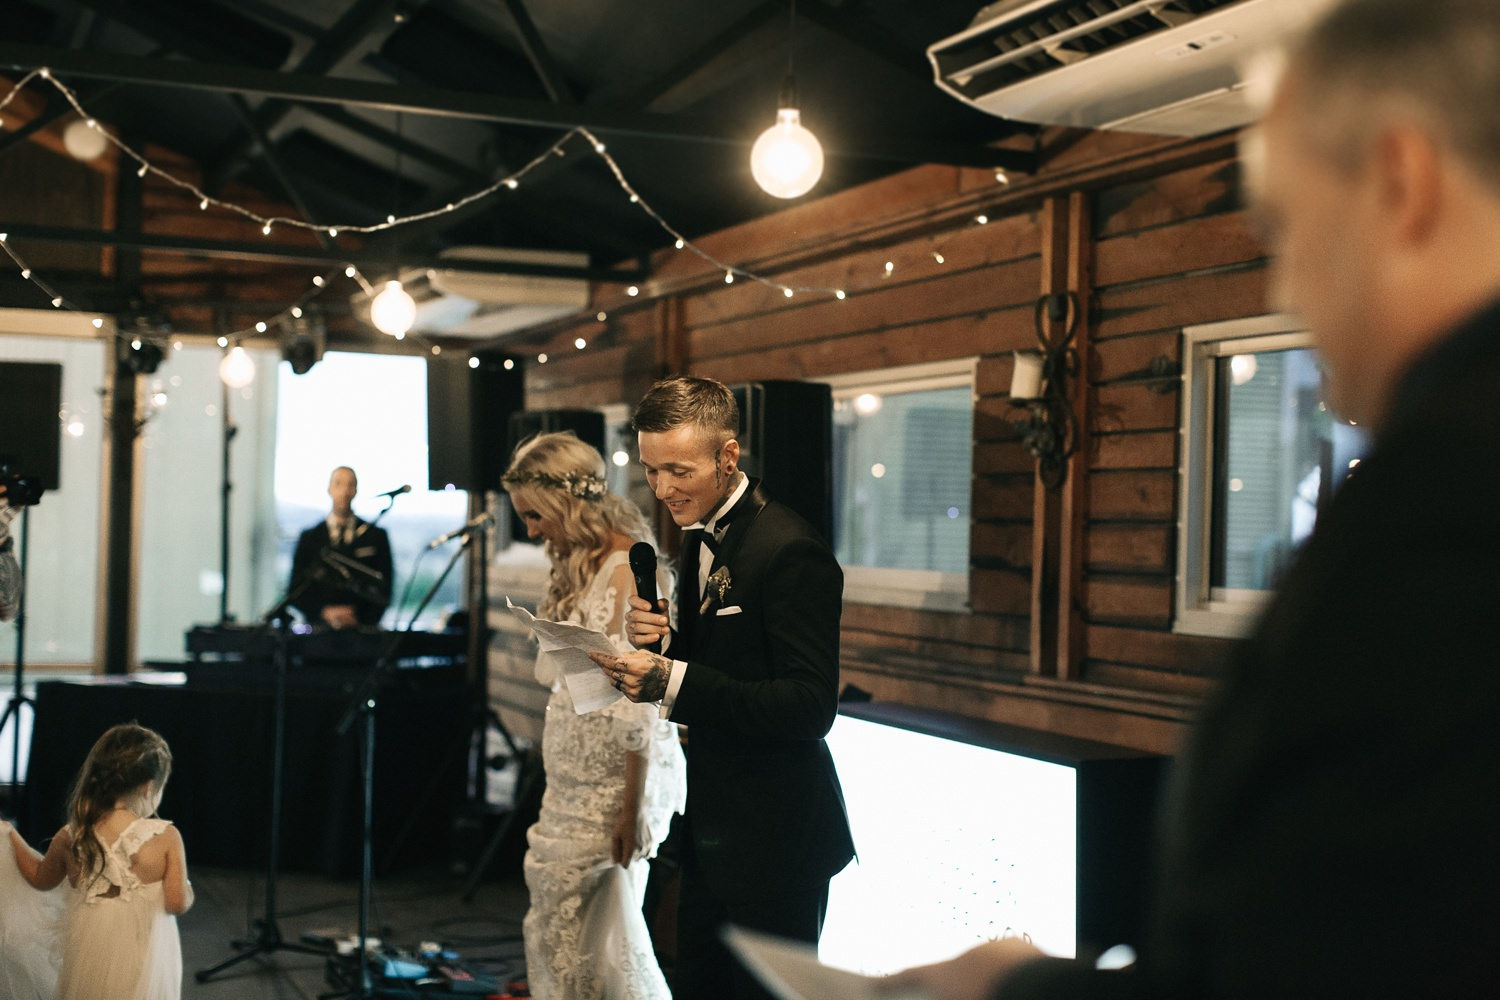 zonzo-estate-yarra-valley-wedding-photographer_0101.jpg